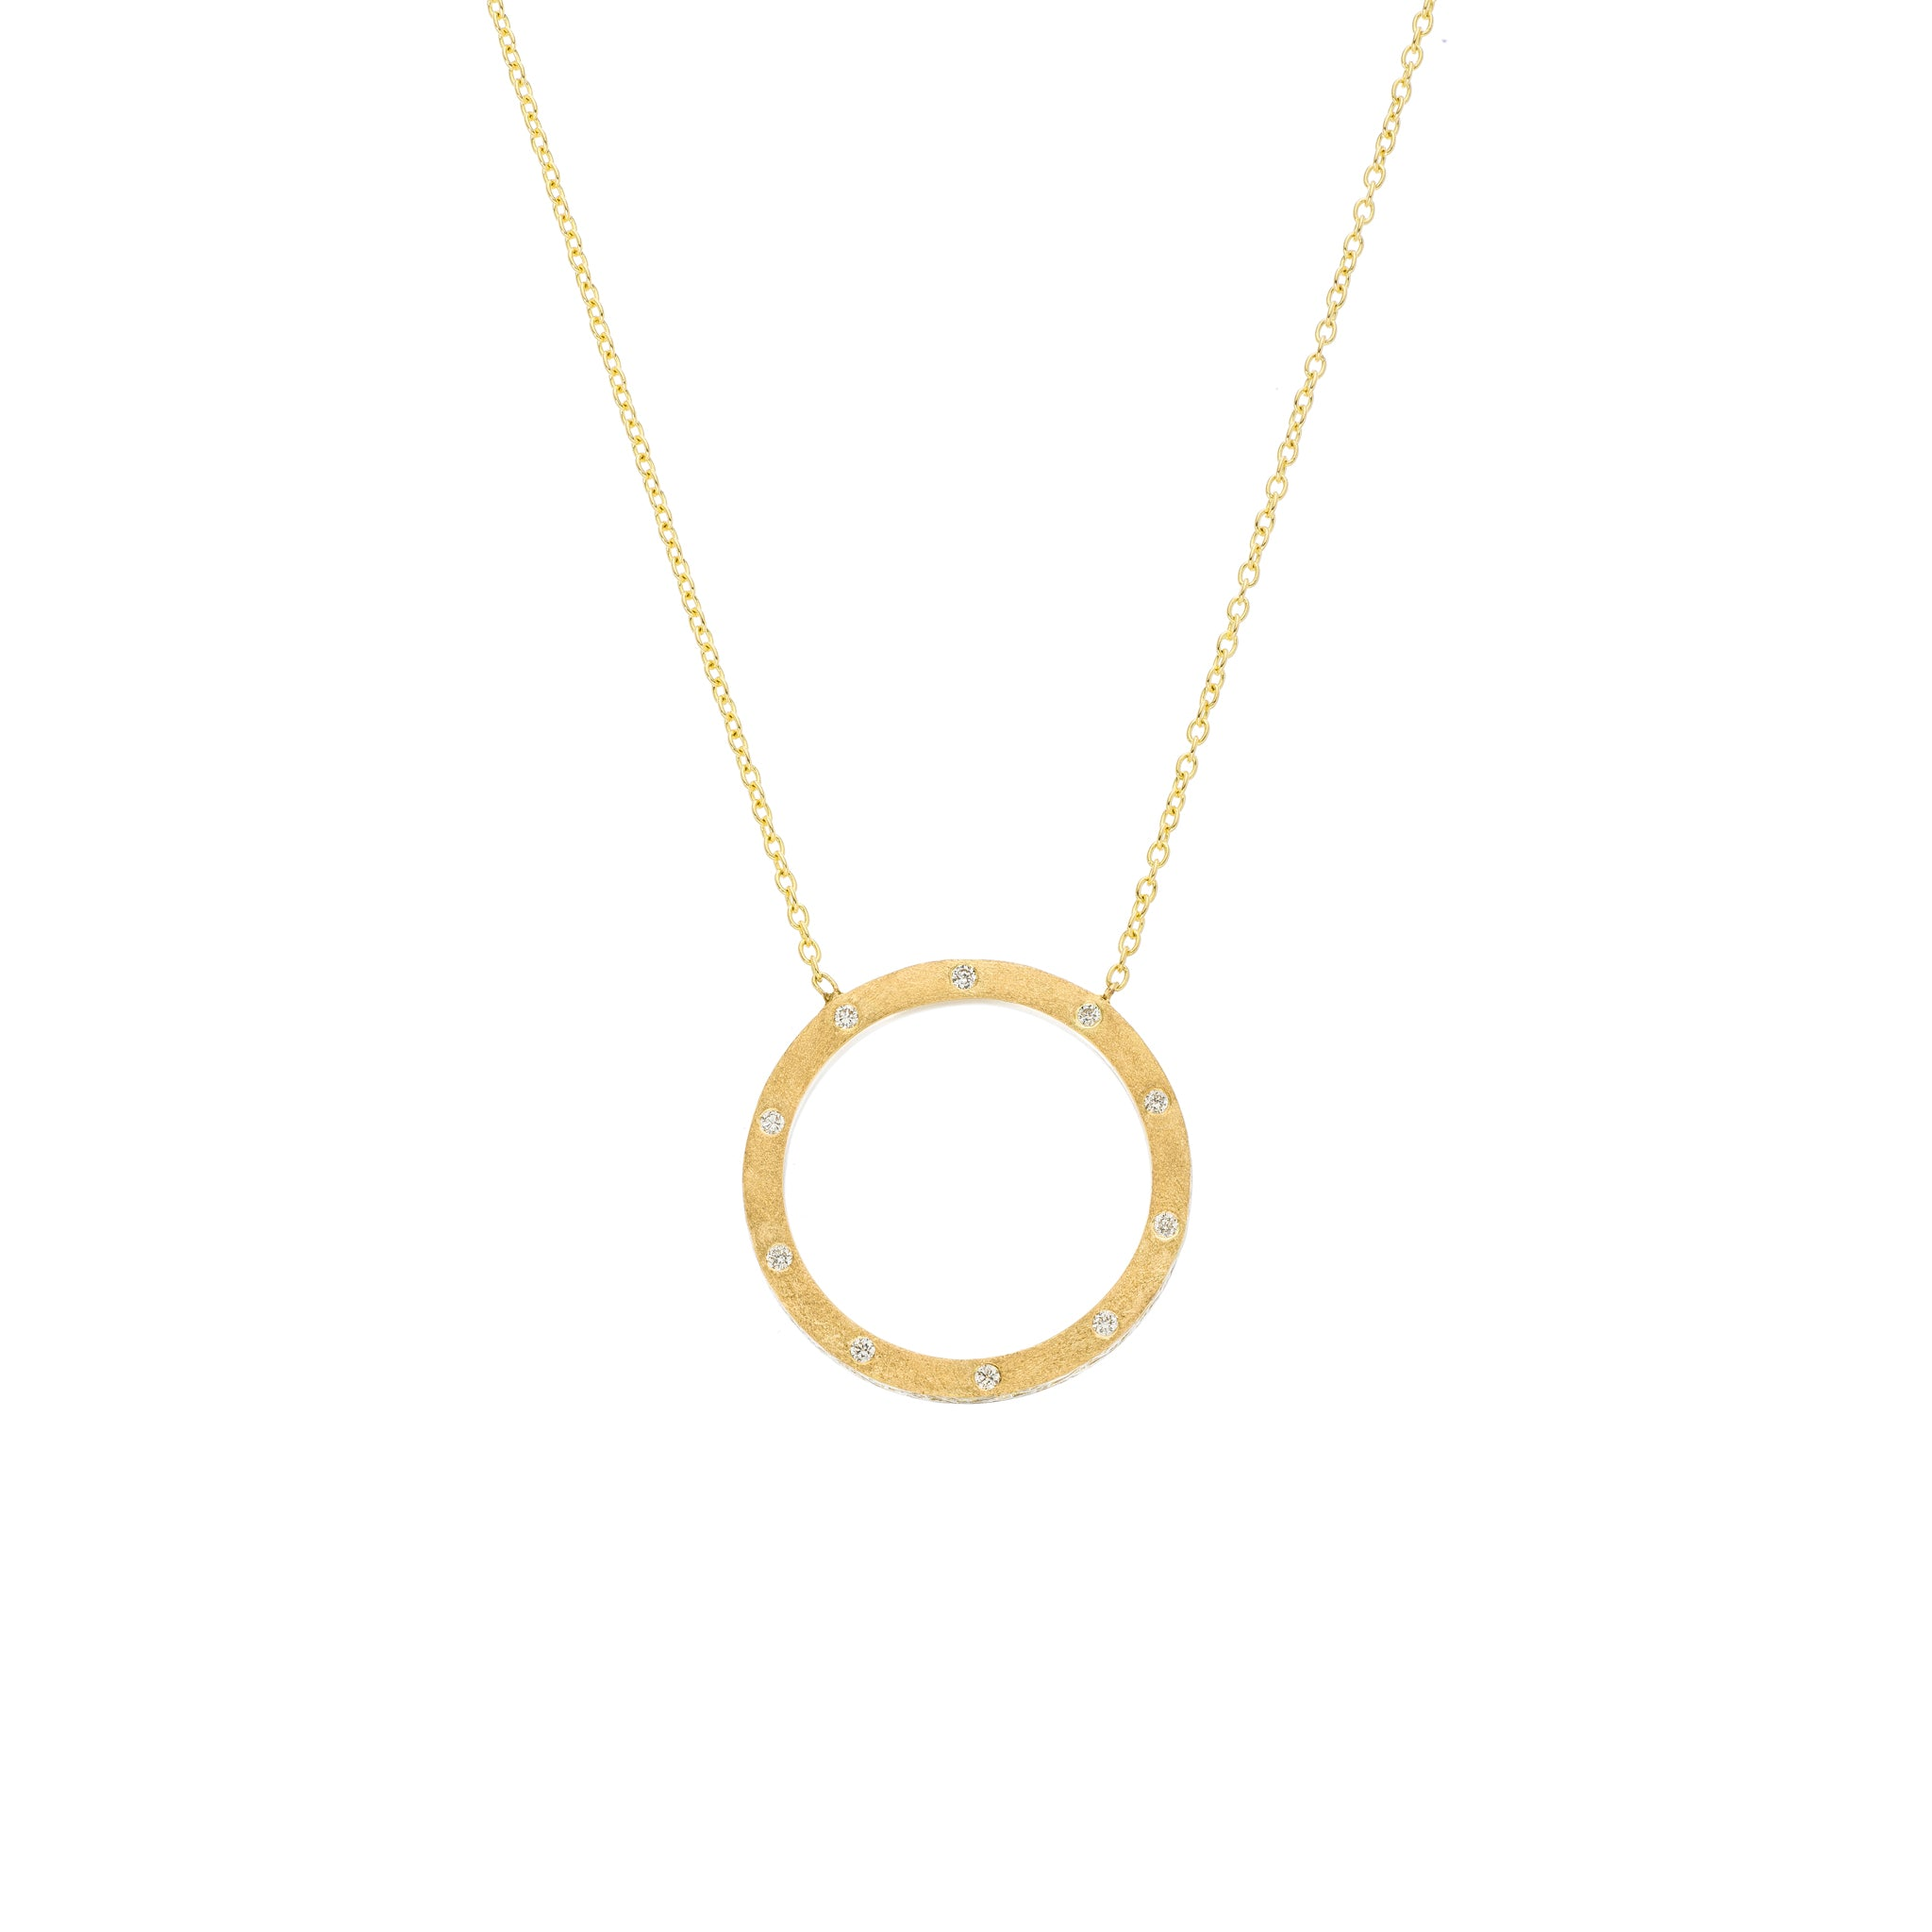 The Dunes Circle 18K Yellow Gold